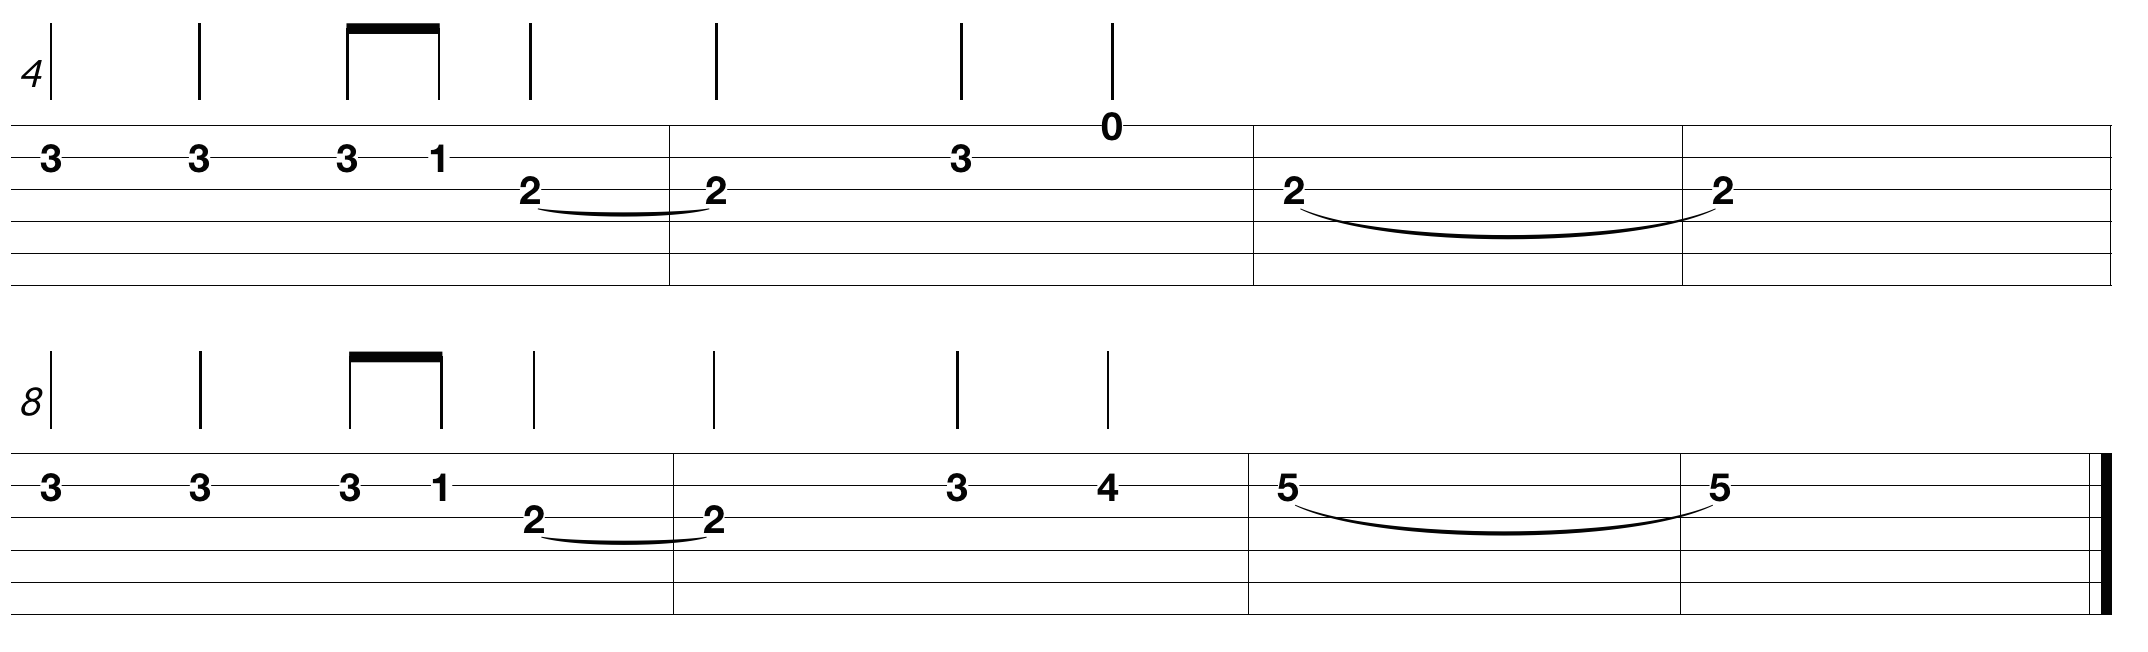 easy-guitar-tabs-for-beginners-electric_2.png